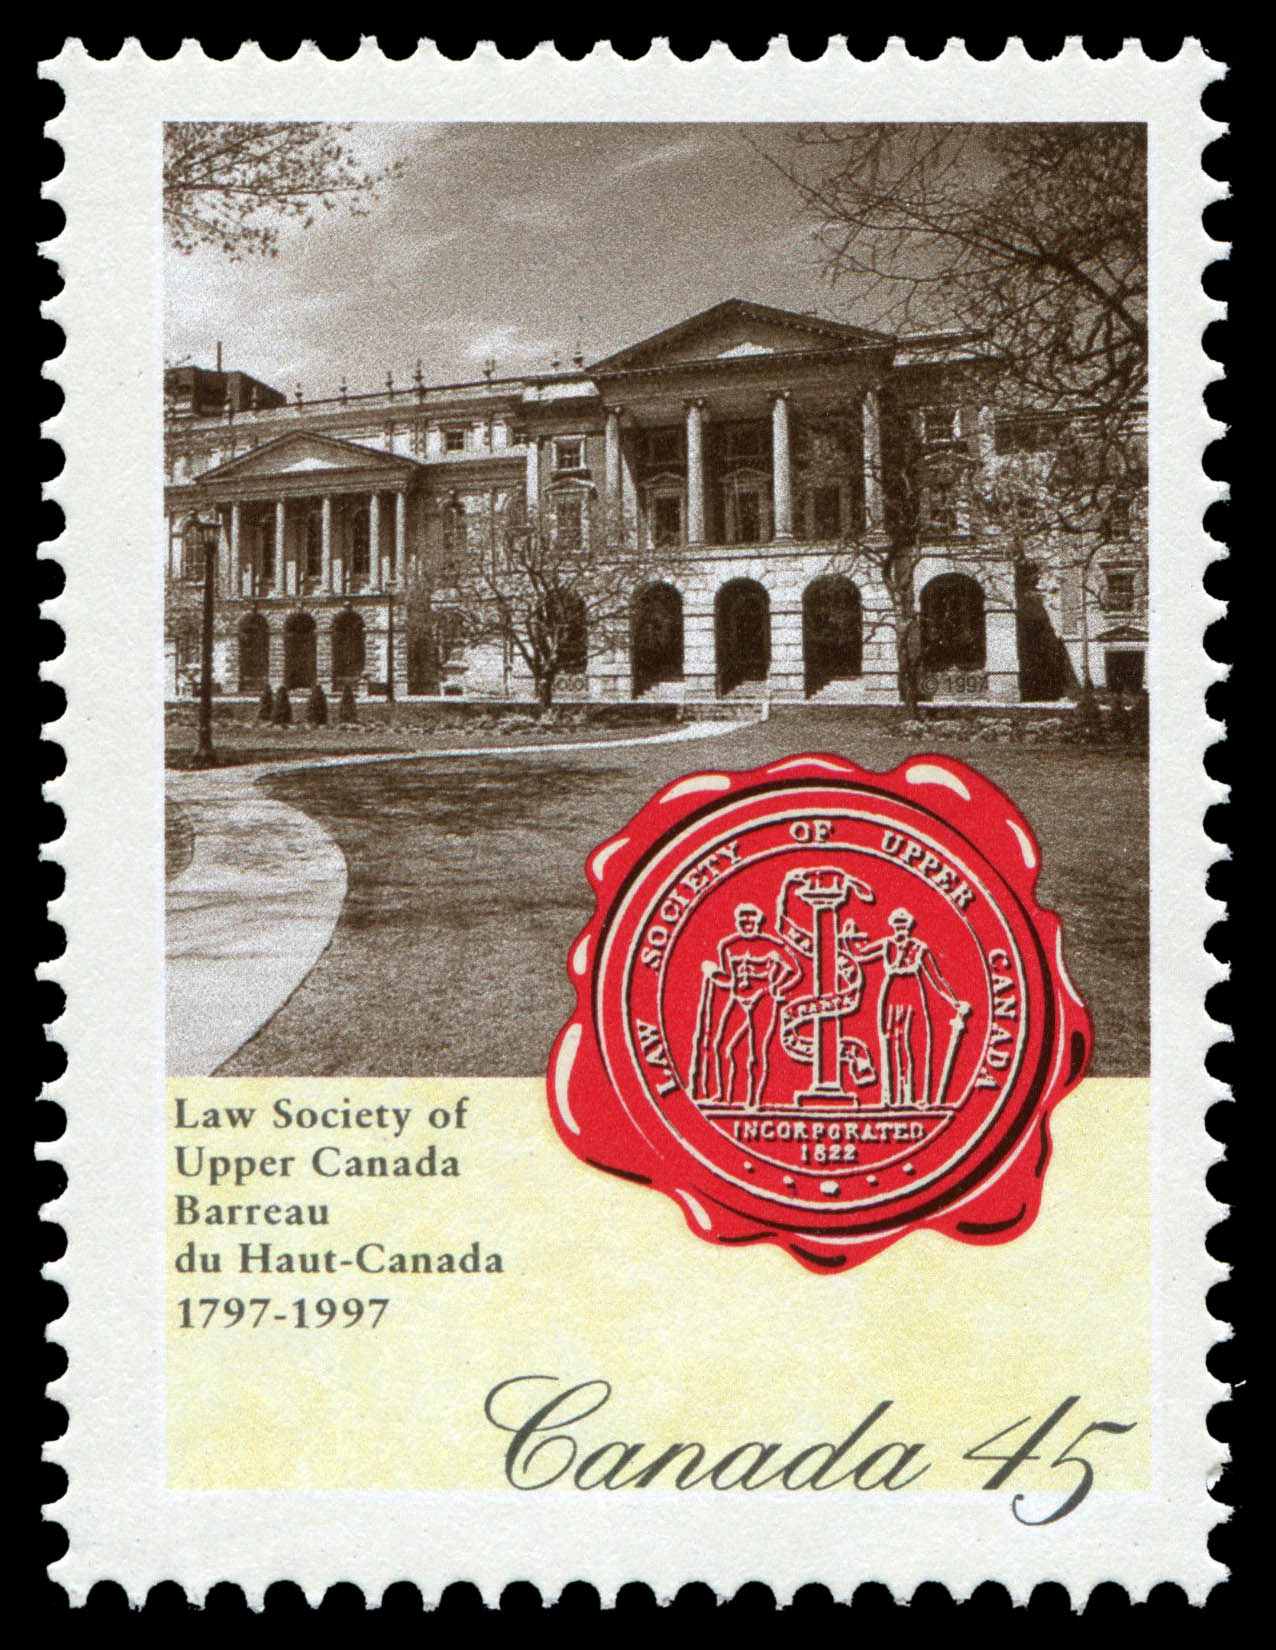 Law Society of Upper Canada, 1797-1997 Canada Postage Stamp